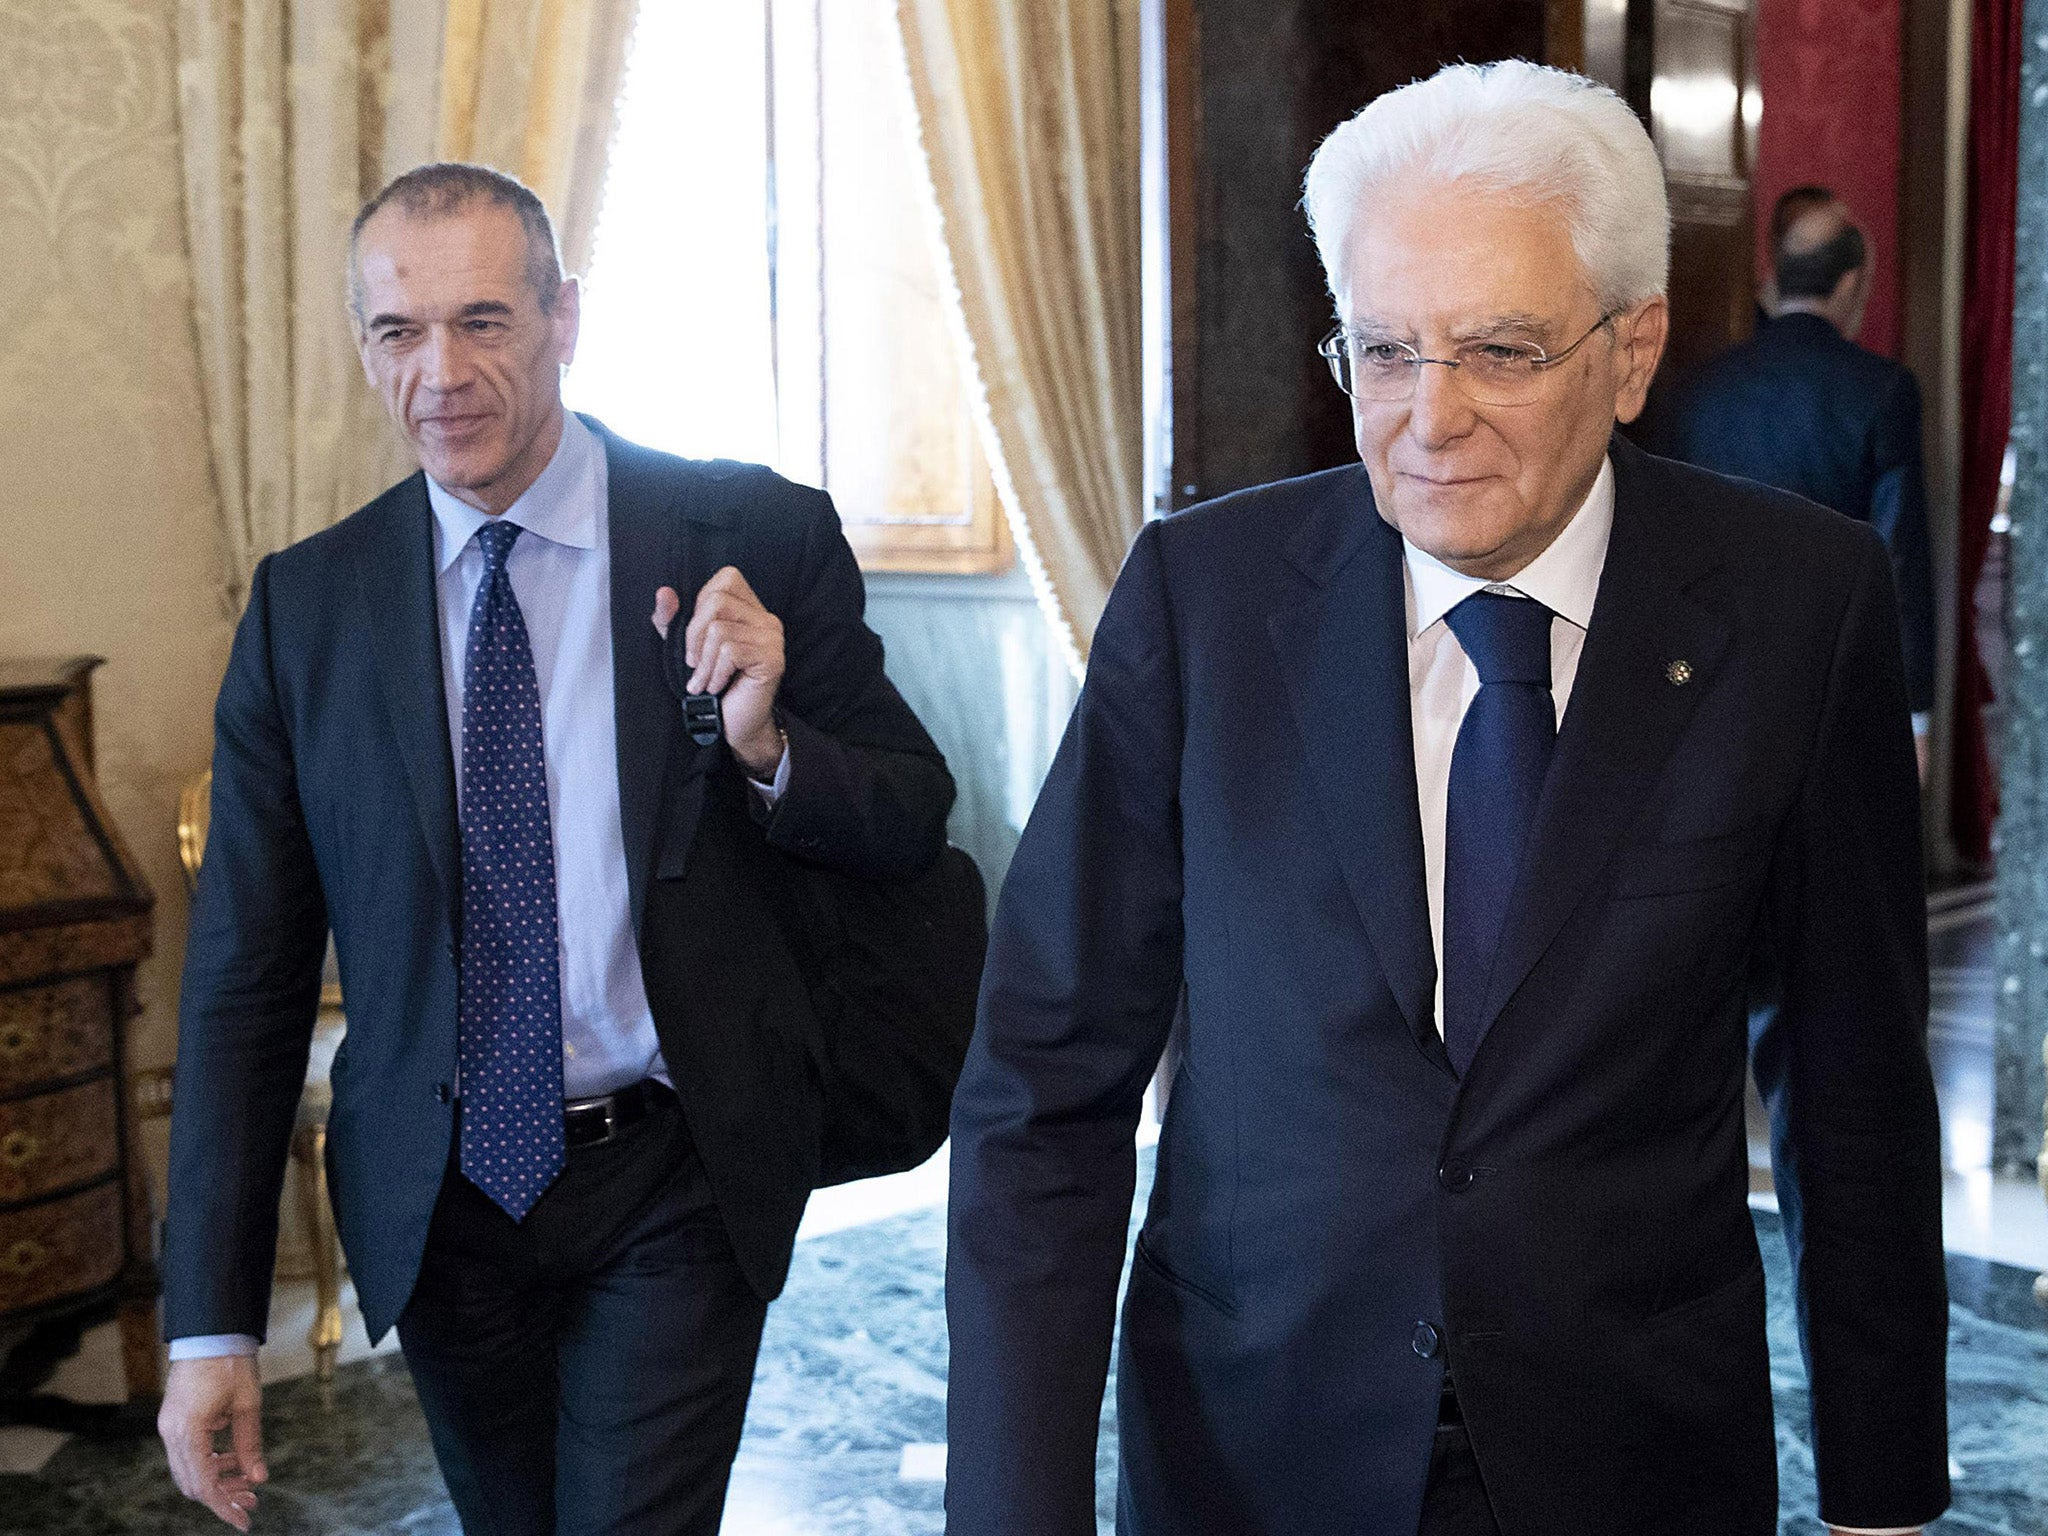 Italy crisis: Potential prime minister fails to get support for stop-gap government as markets plunge